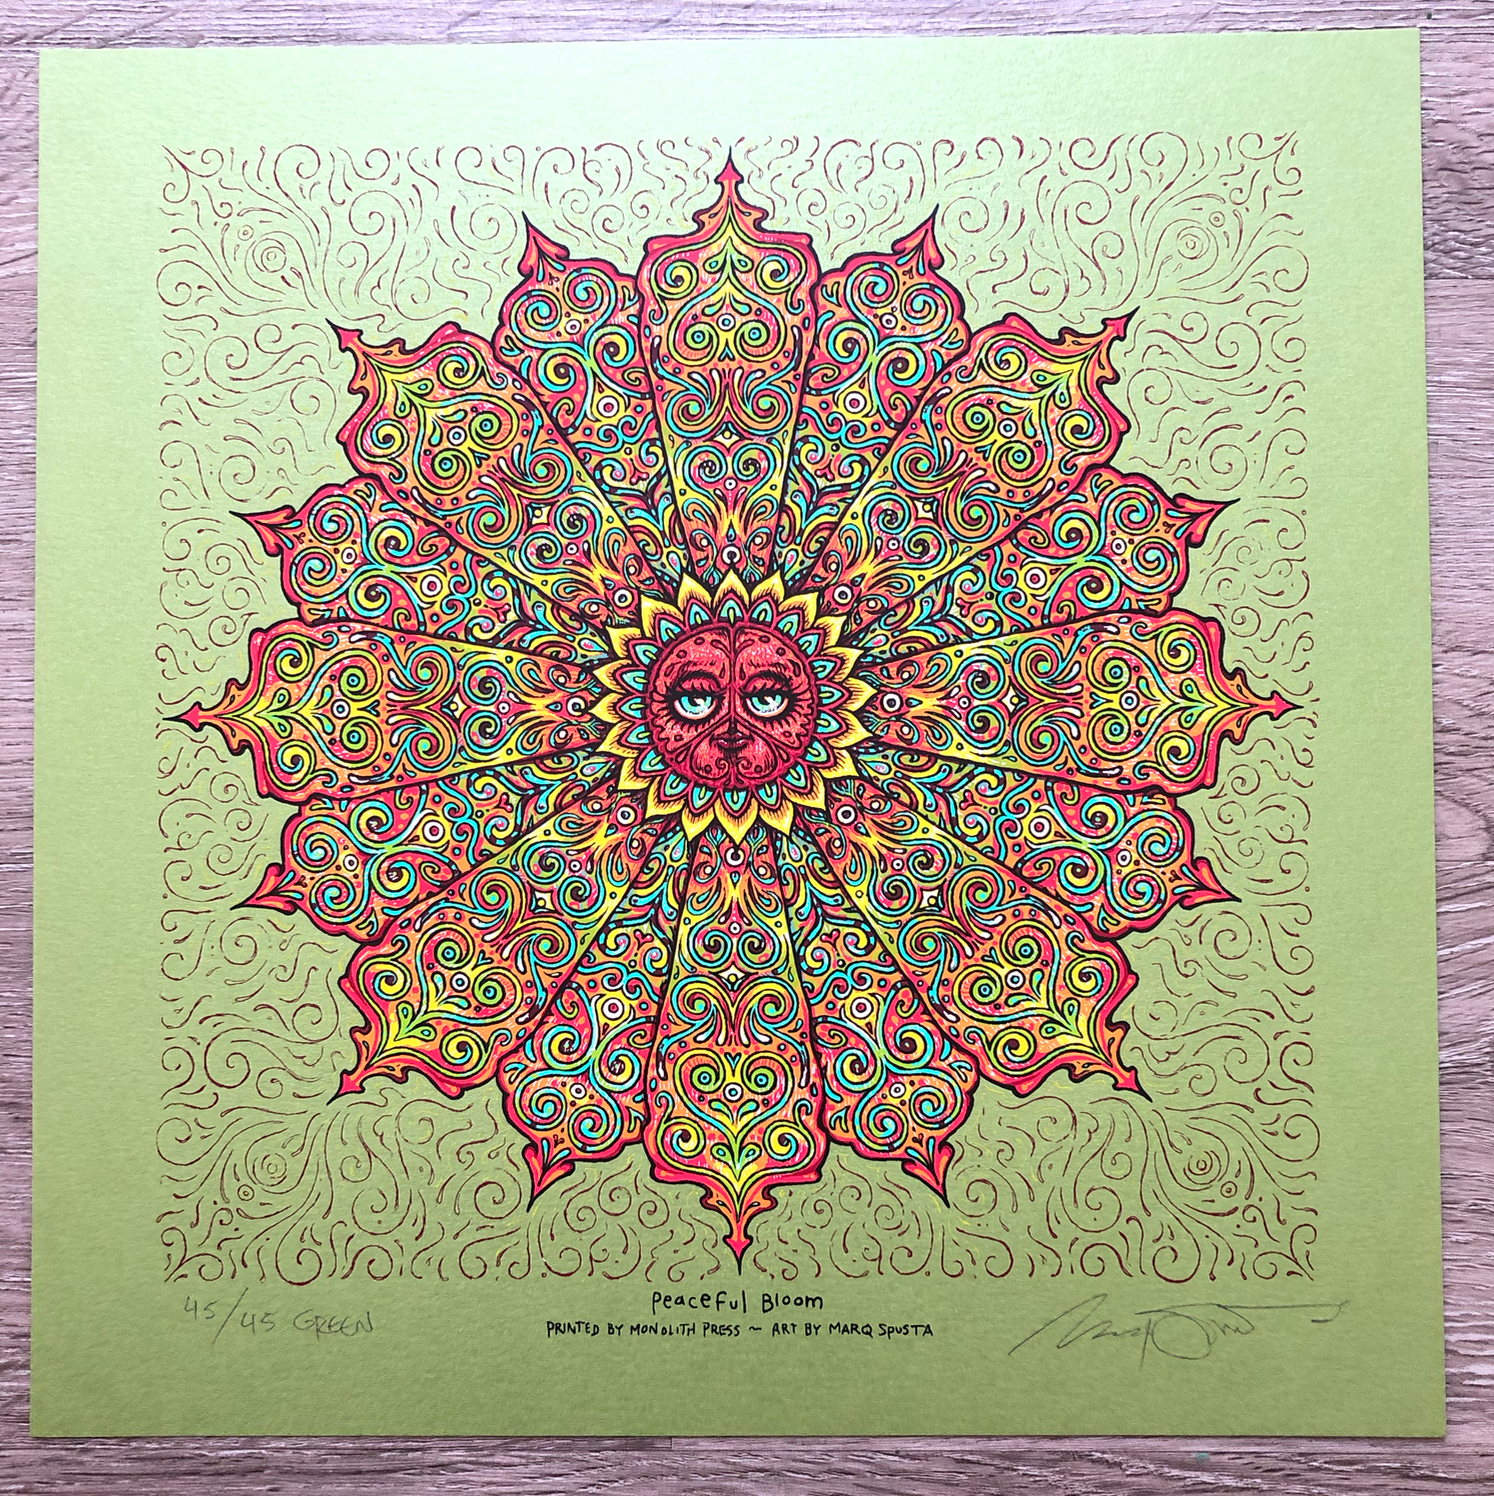 """Green Peaceful Bloom 12"""" x 12"""" edition of 45"""